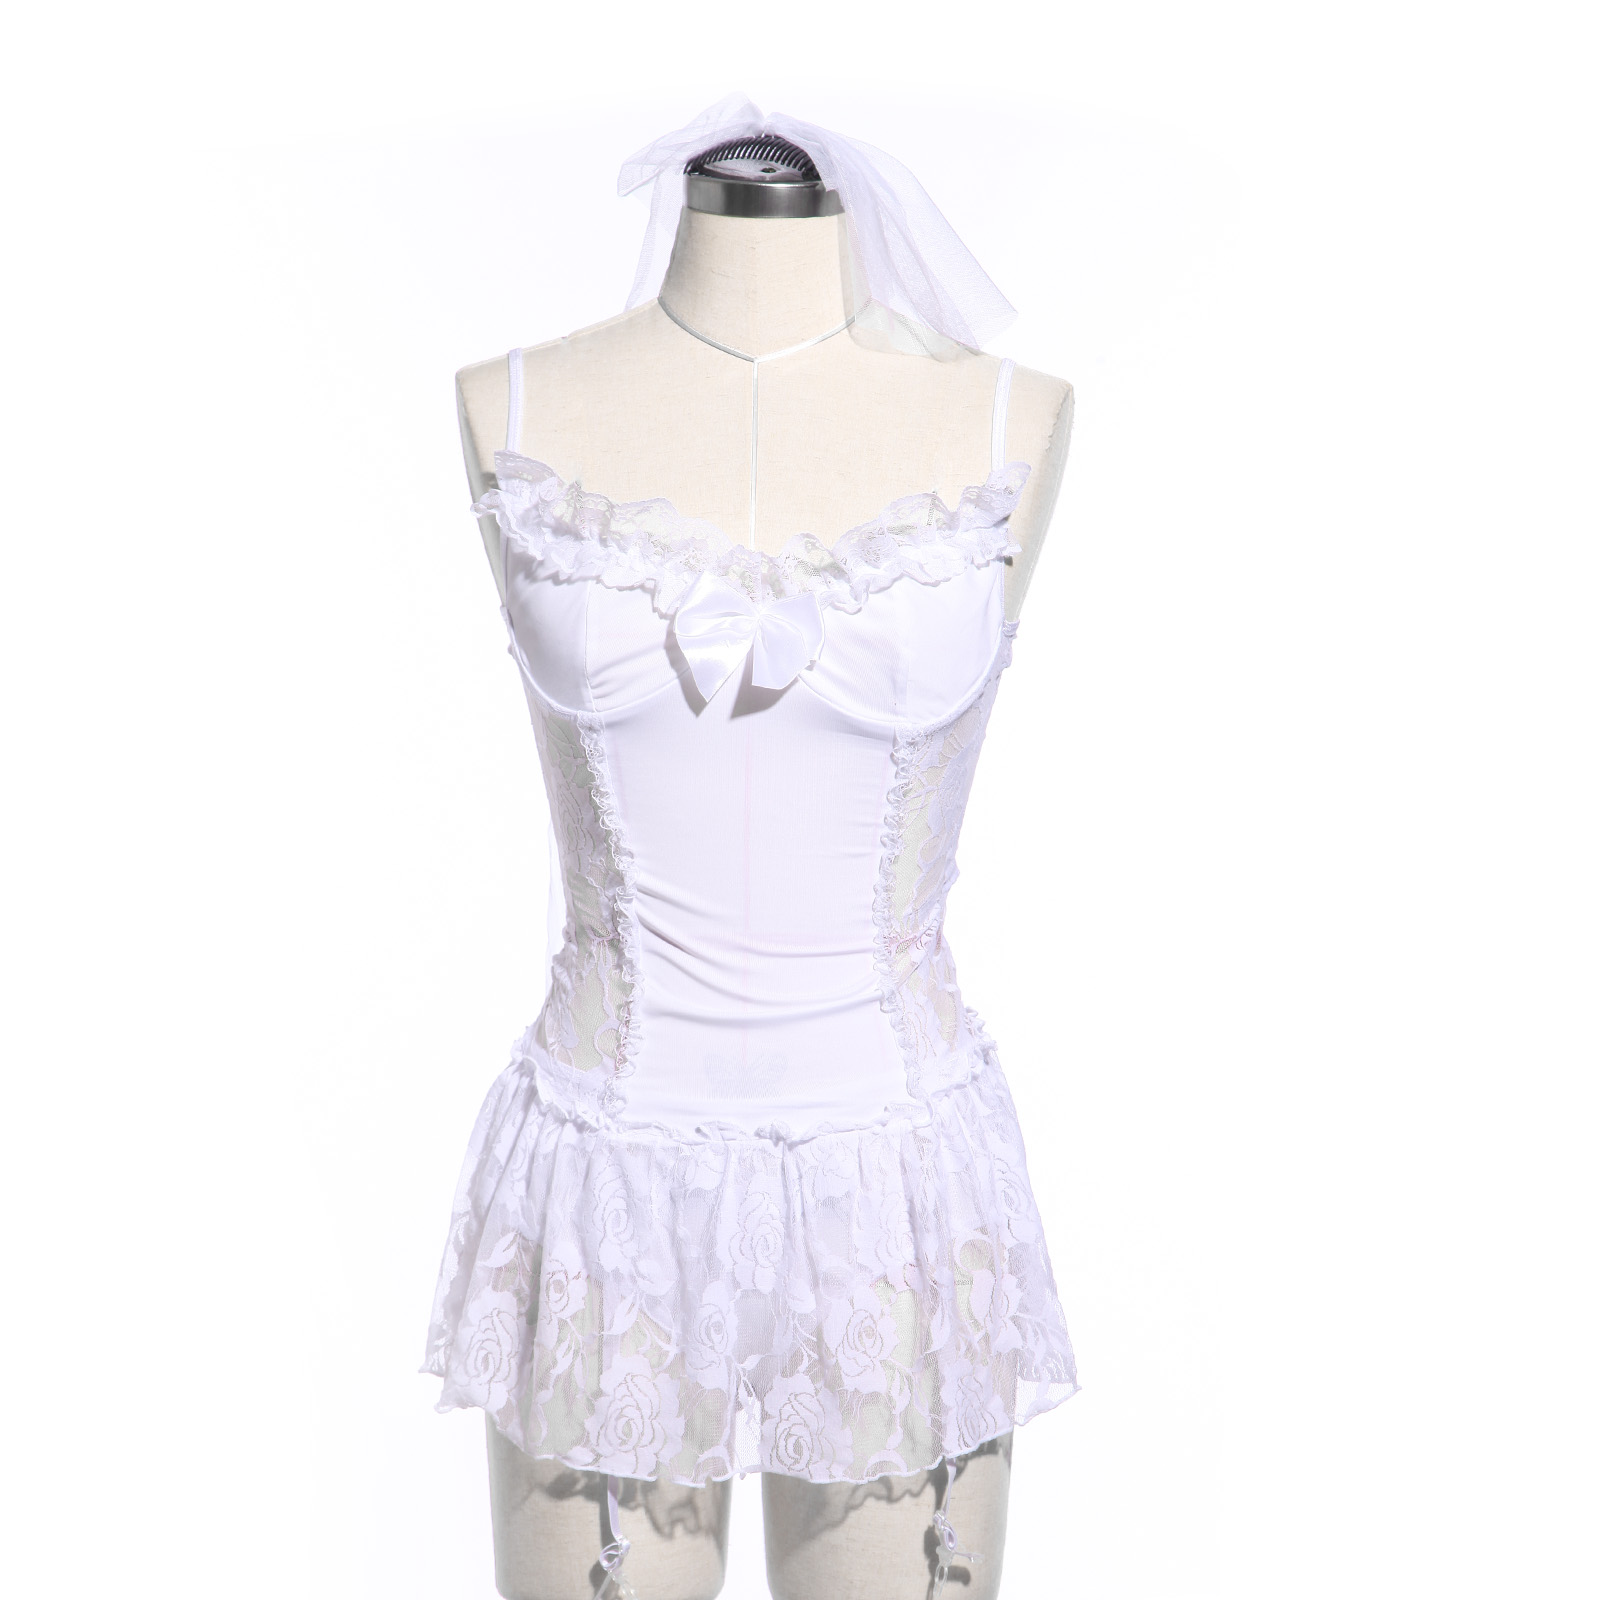 White Sexy Bride To Be Costume Bridesmaid Hen Night Fancy Dress Outfits | EBay